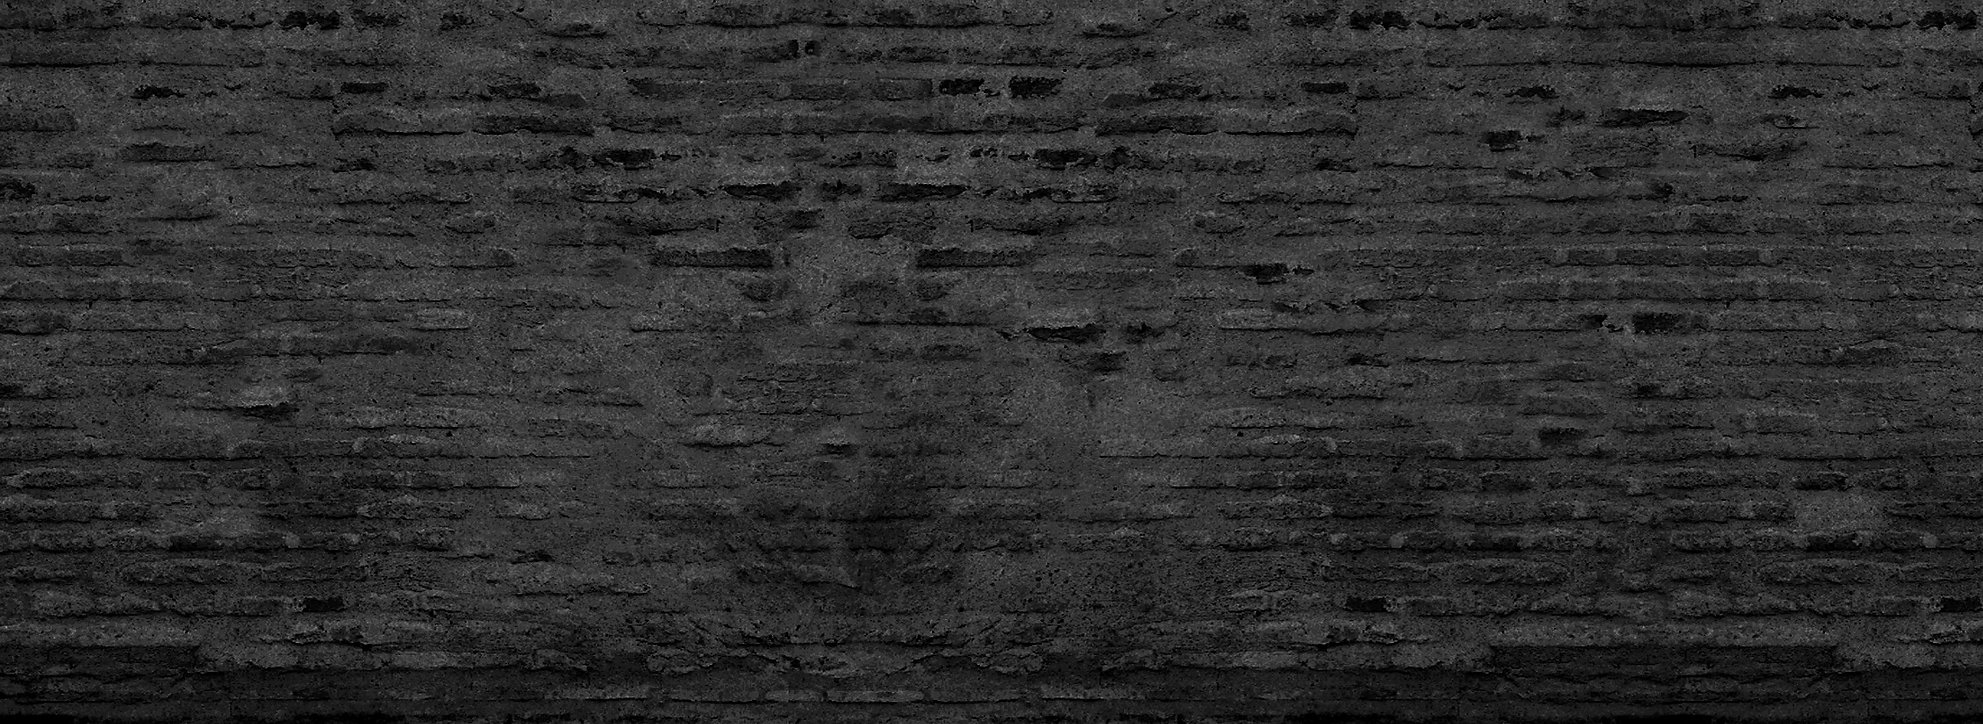 Pared%2520Ladrillo_edited_edited.jpg